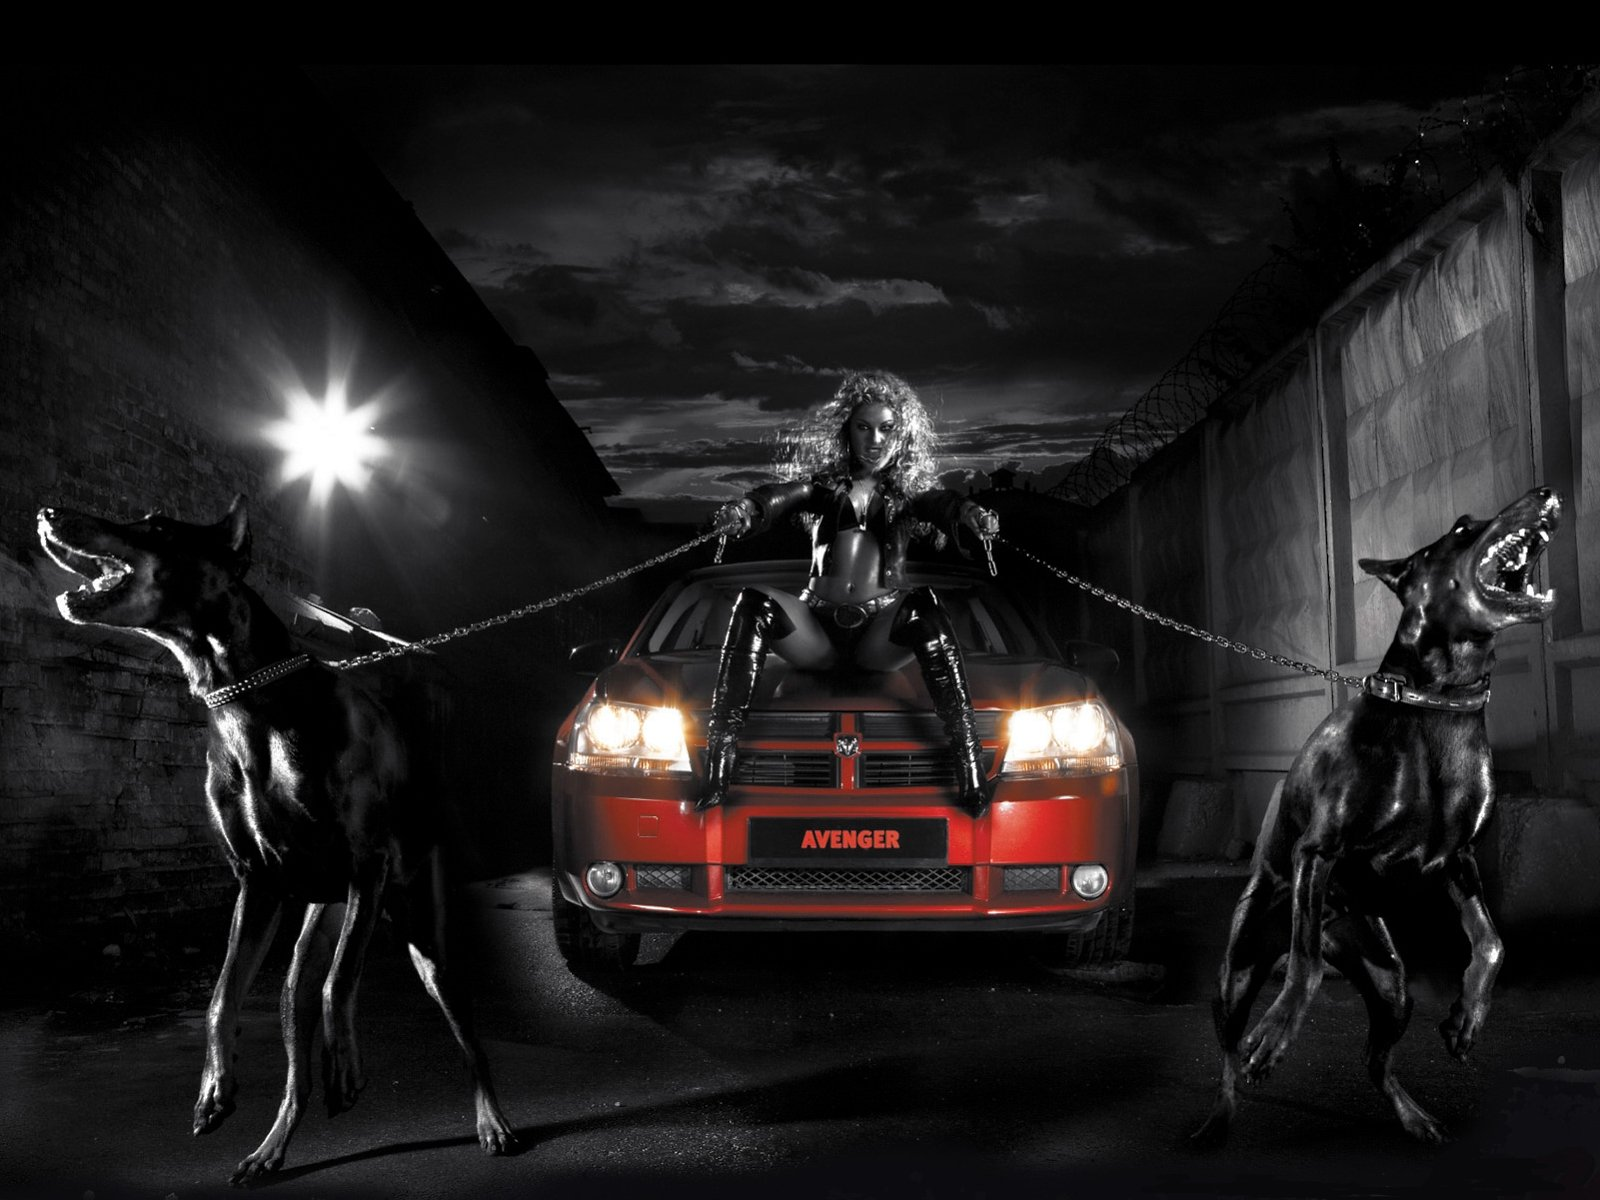 Red And Black Car Wallpapers: Dobermans Bad Girl Red Car Chain Wallpaper